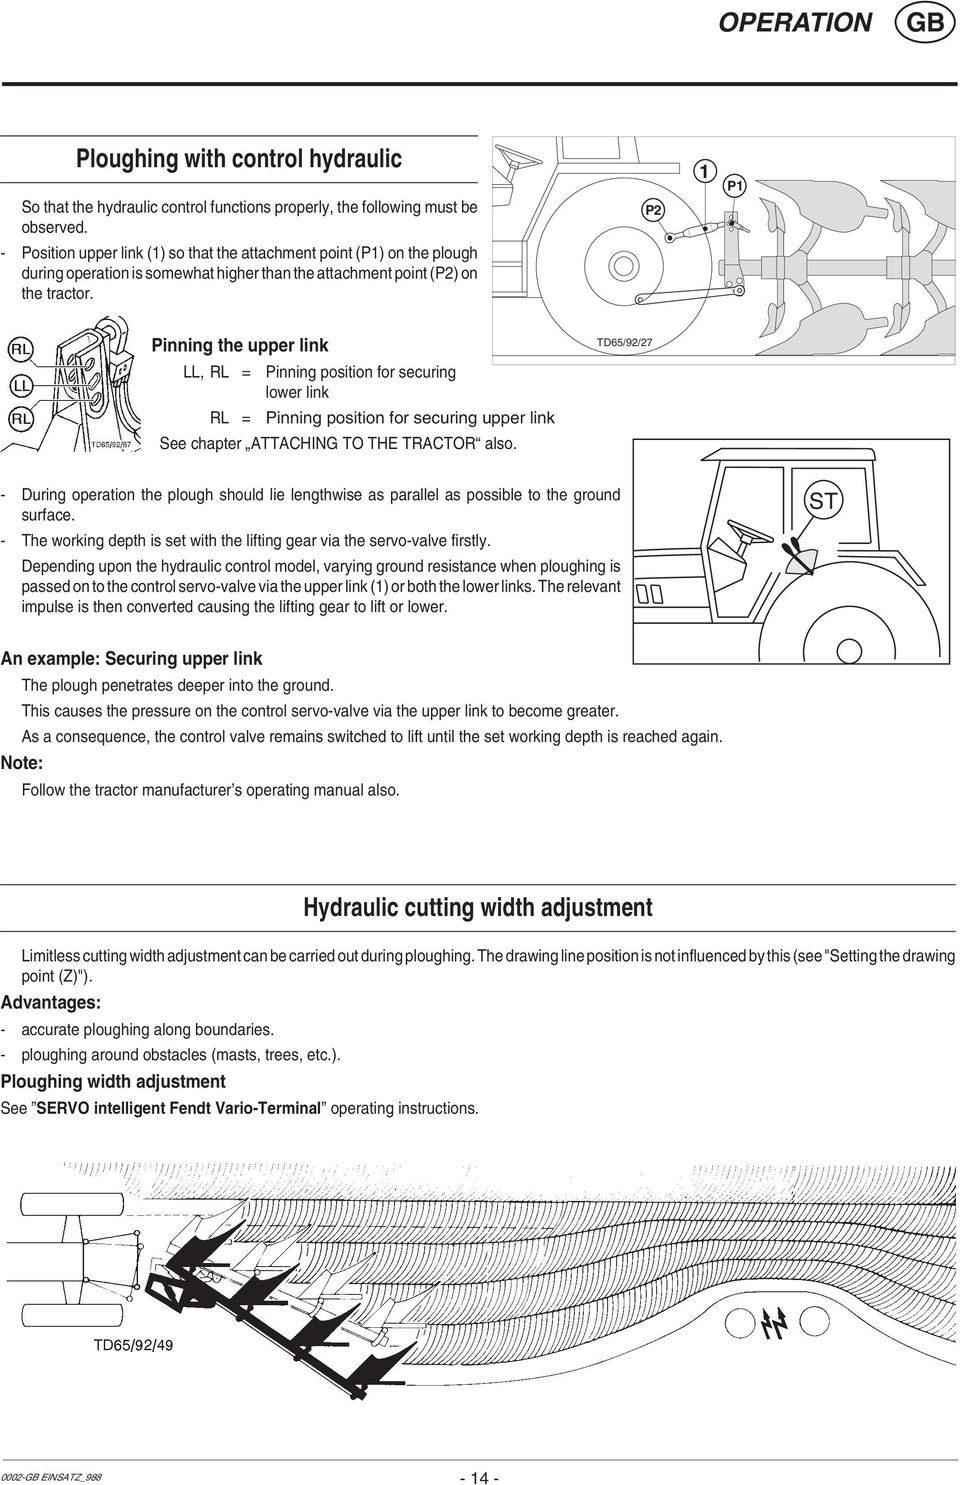 Operators Manual Instructions For Product Delivery Page 3 Helical Wire Harness Lay P Pinning The Upper Link Ll Rl Position Securing Lower